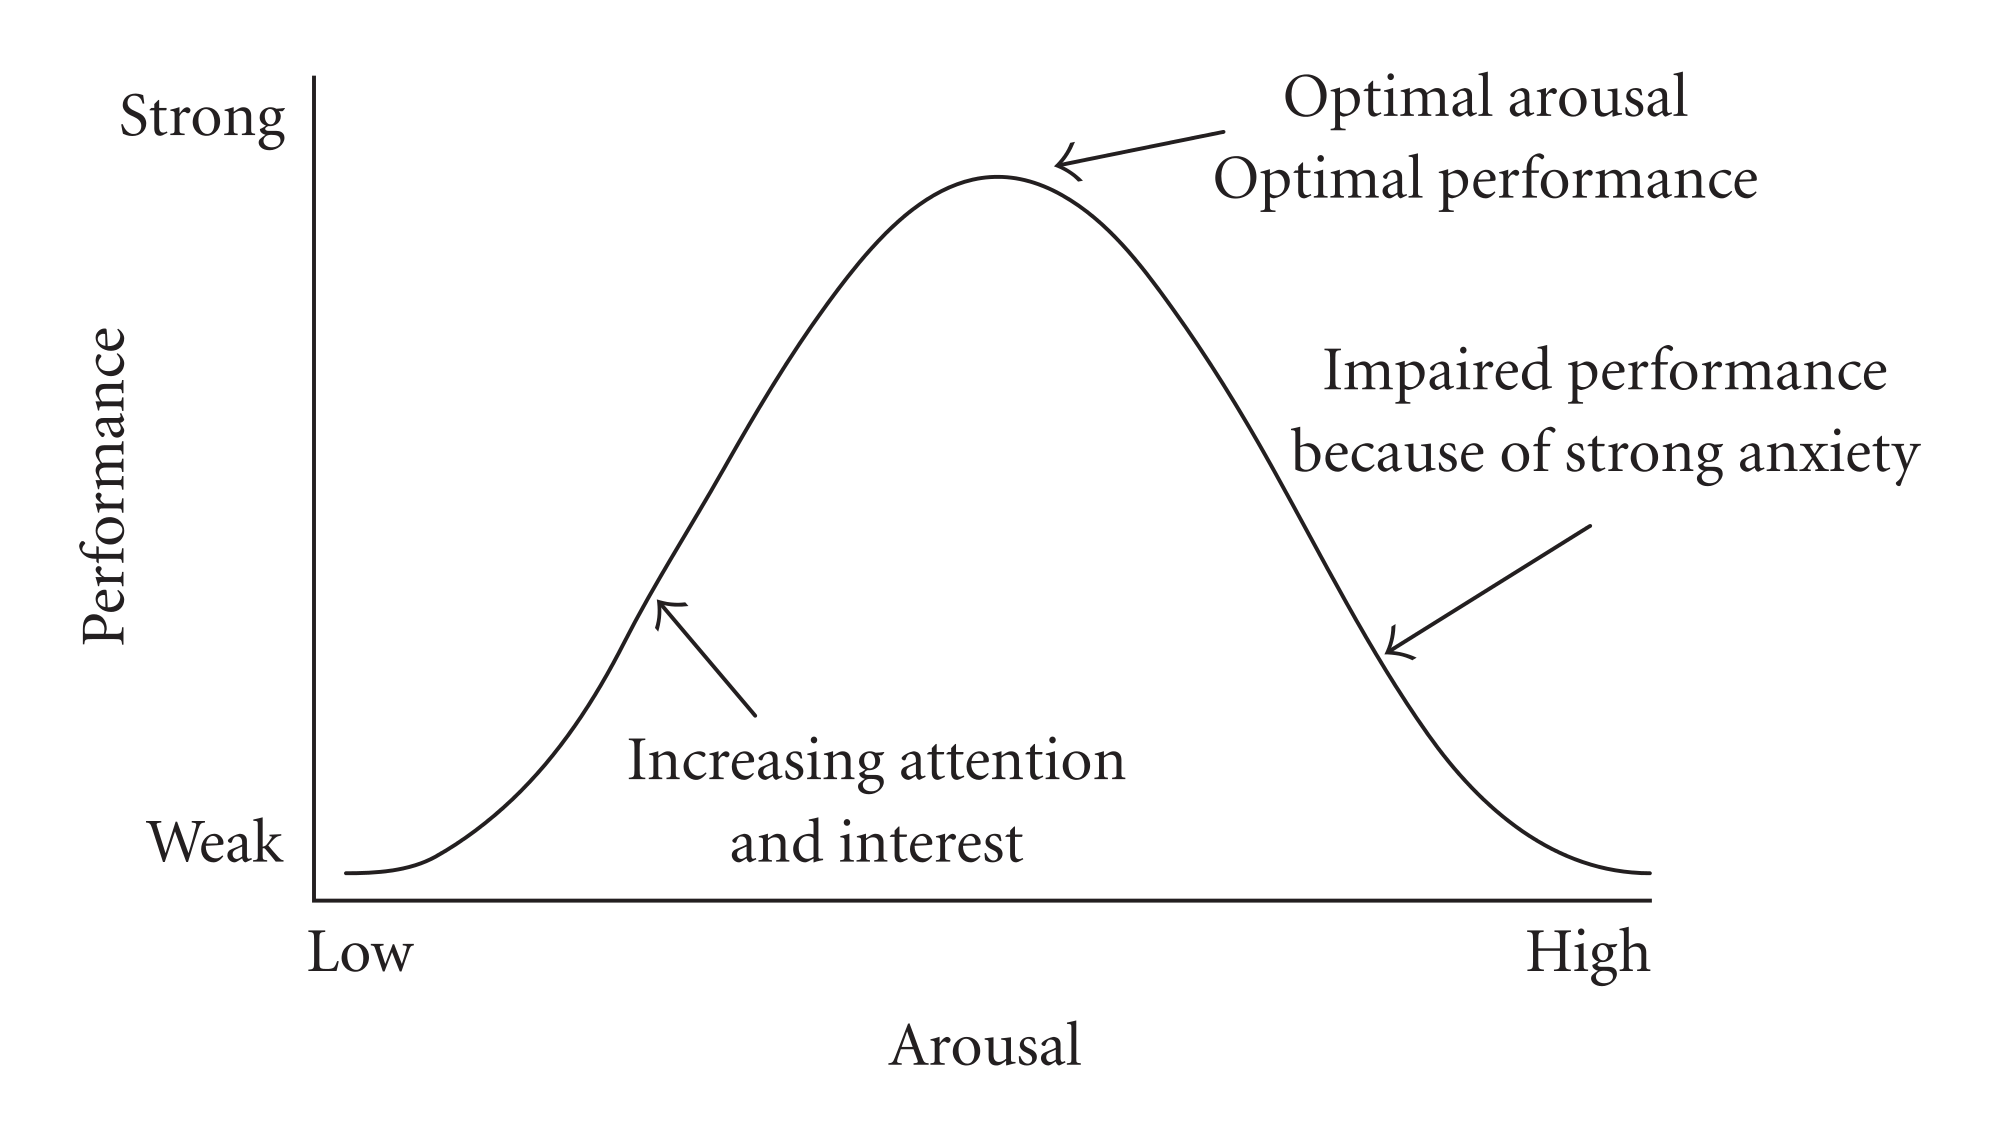 The Yerkes-Dodson law states that increased arousal improves performance, but only up to a certain point.